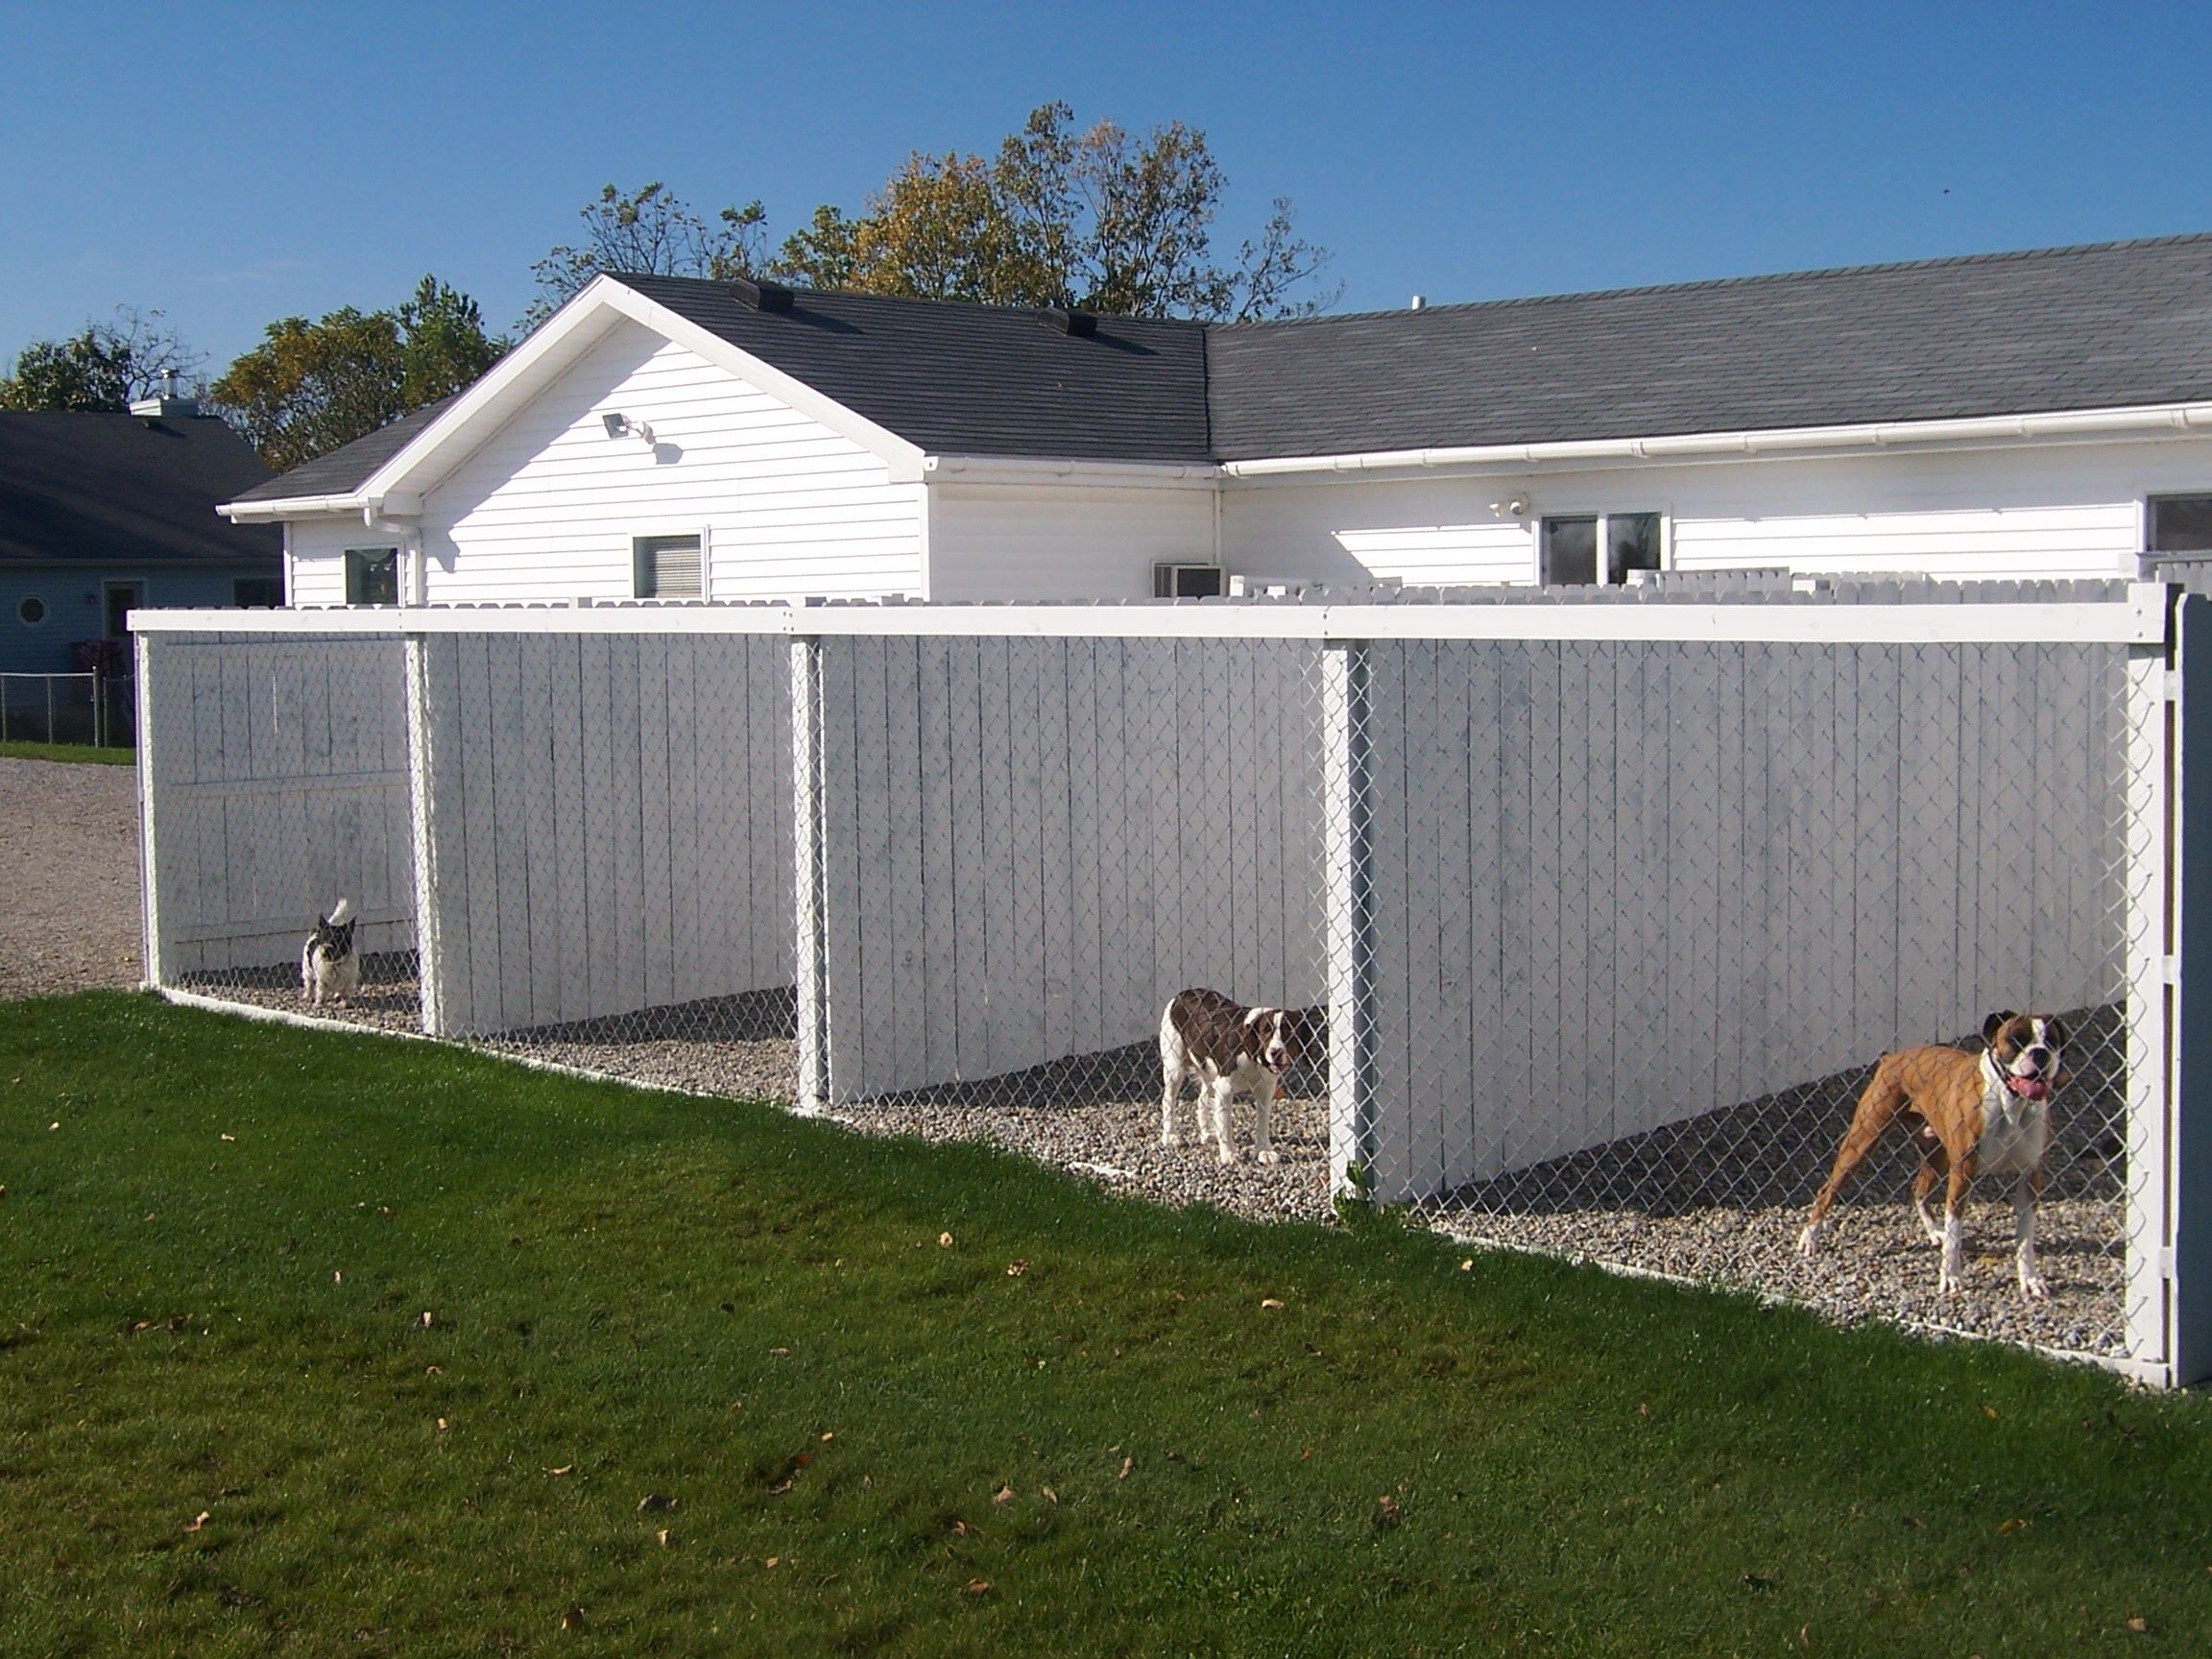 best dog kennels images on pinterest  kennel ideas dog  - indoor outdoor dog kennels and runs